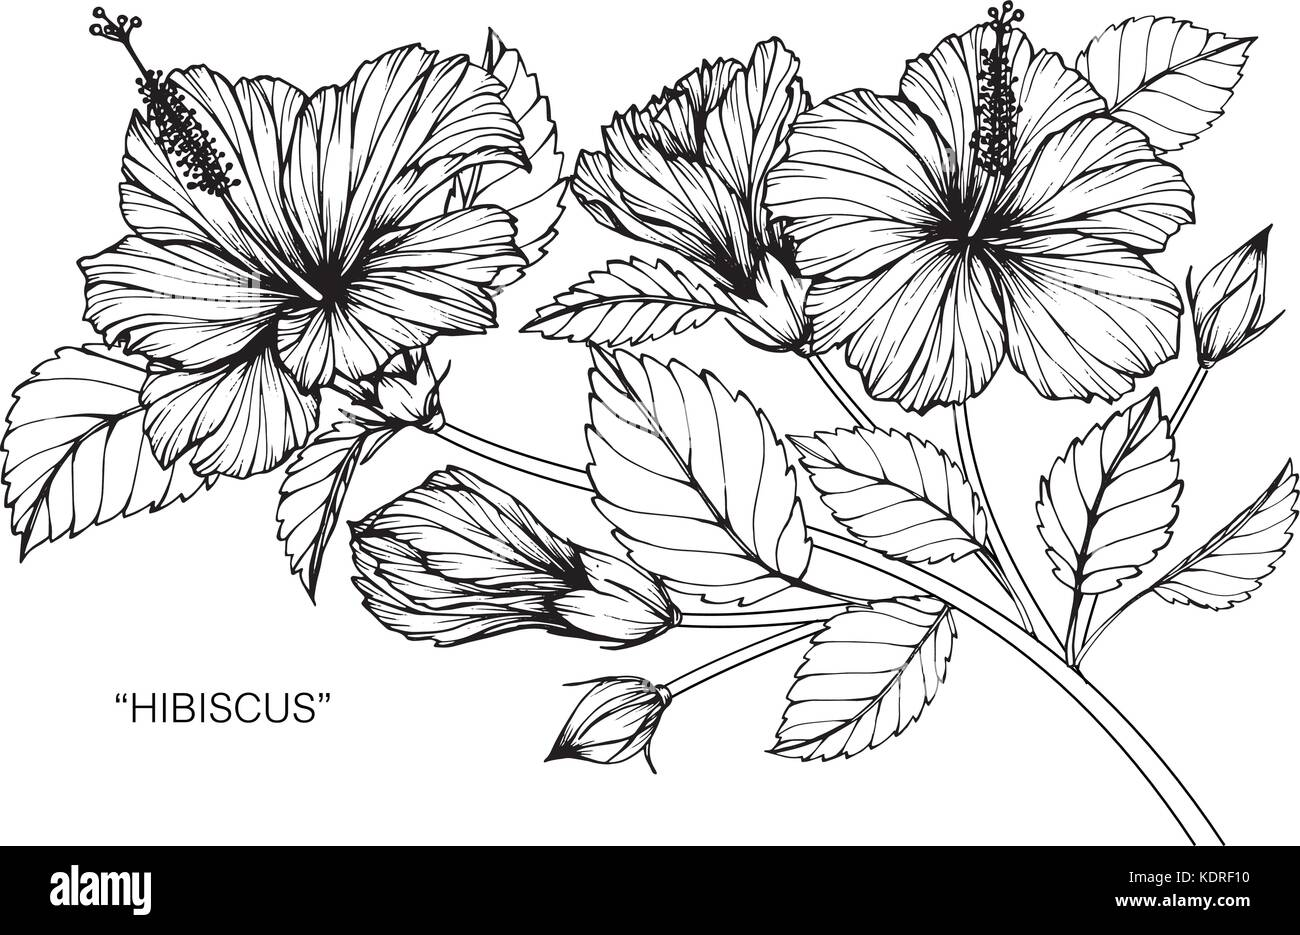 Hibiscus flower stock vector images alamy hibiscus flower drawing illustration black and white with line art stock vector izmirmasajfo